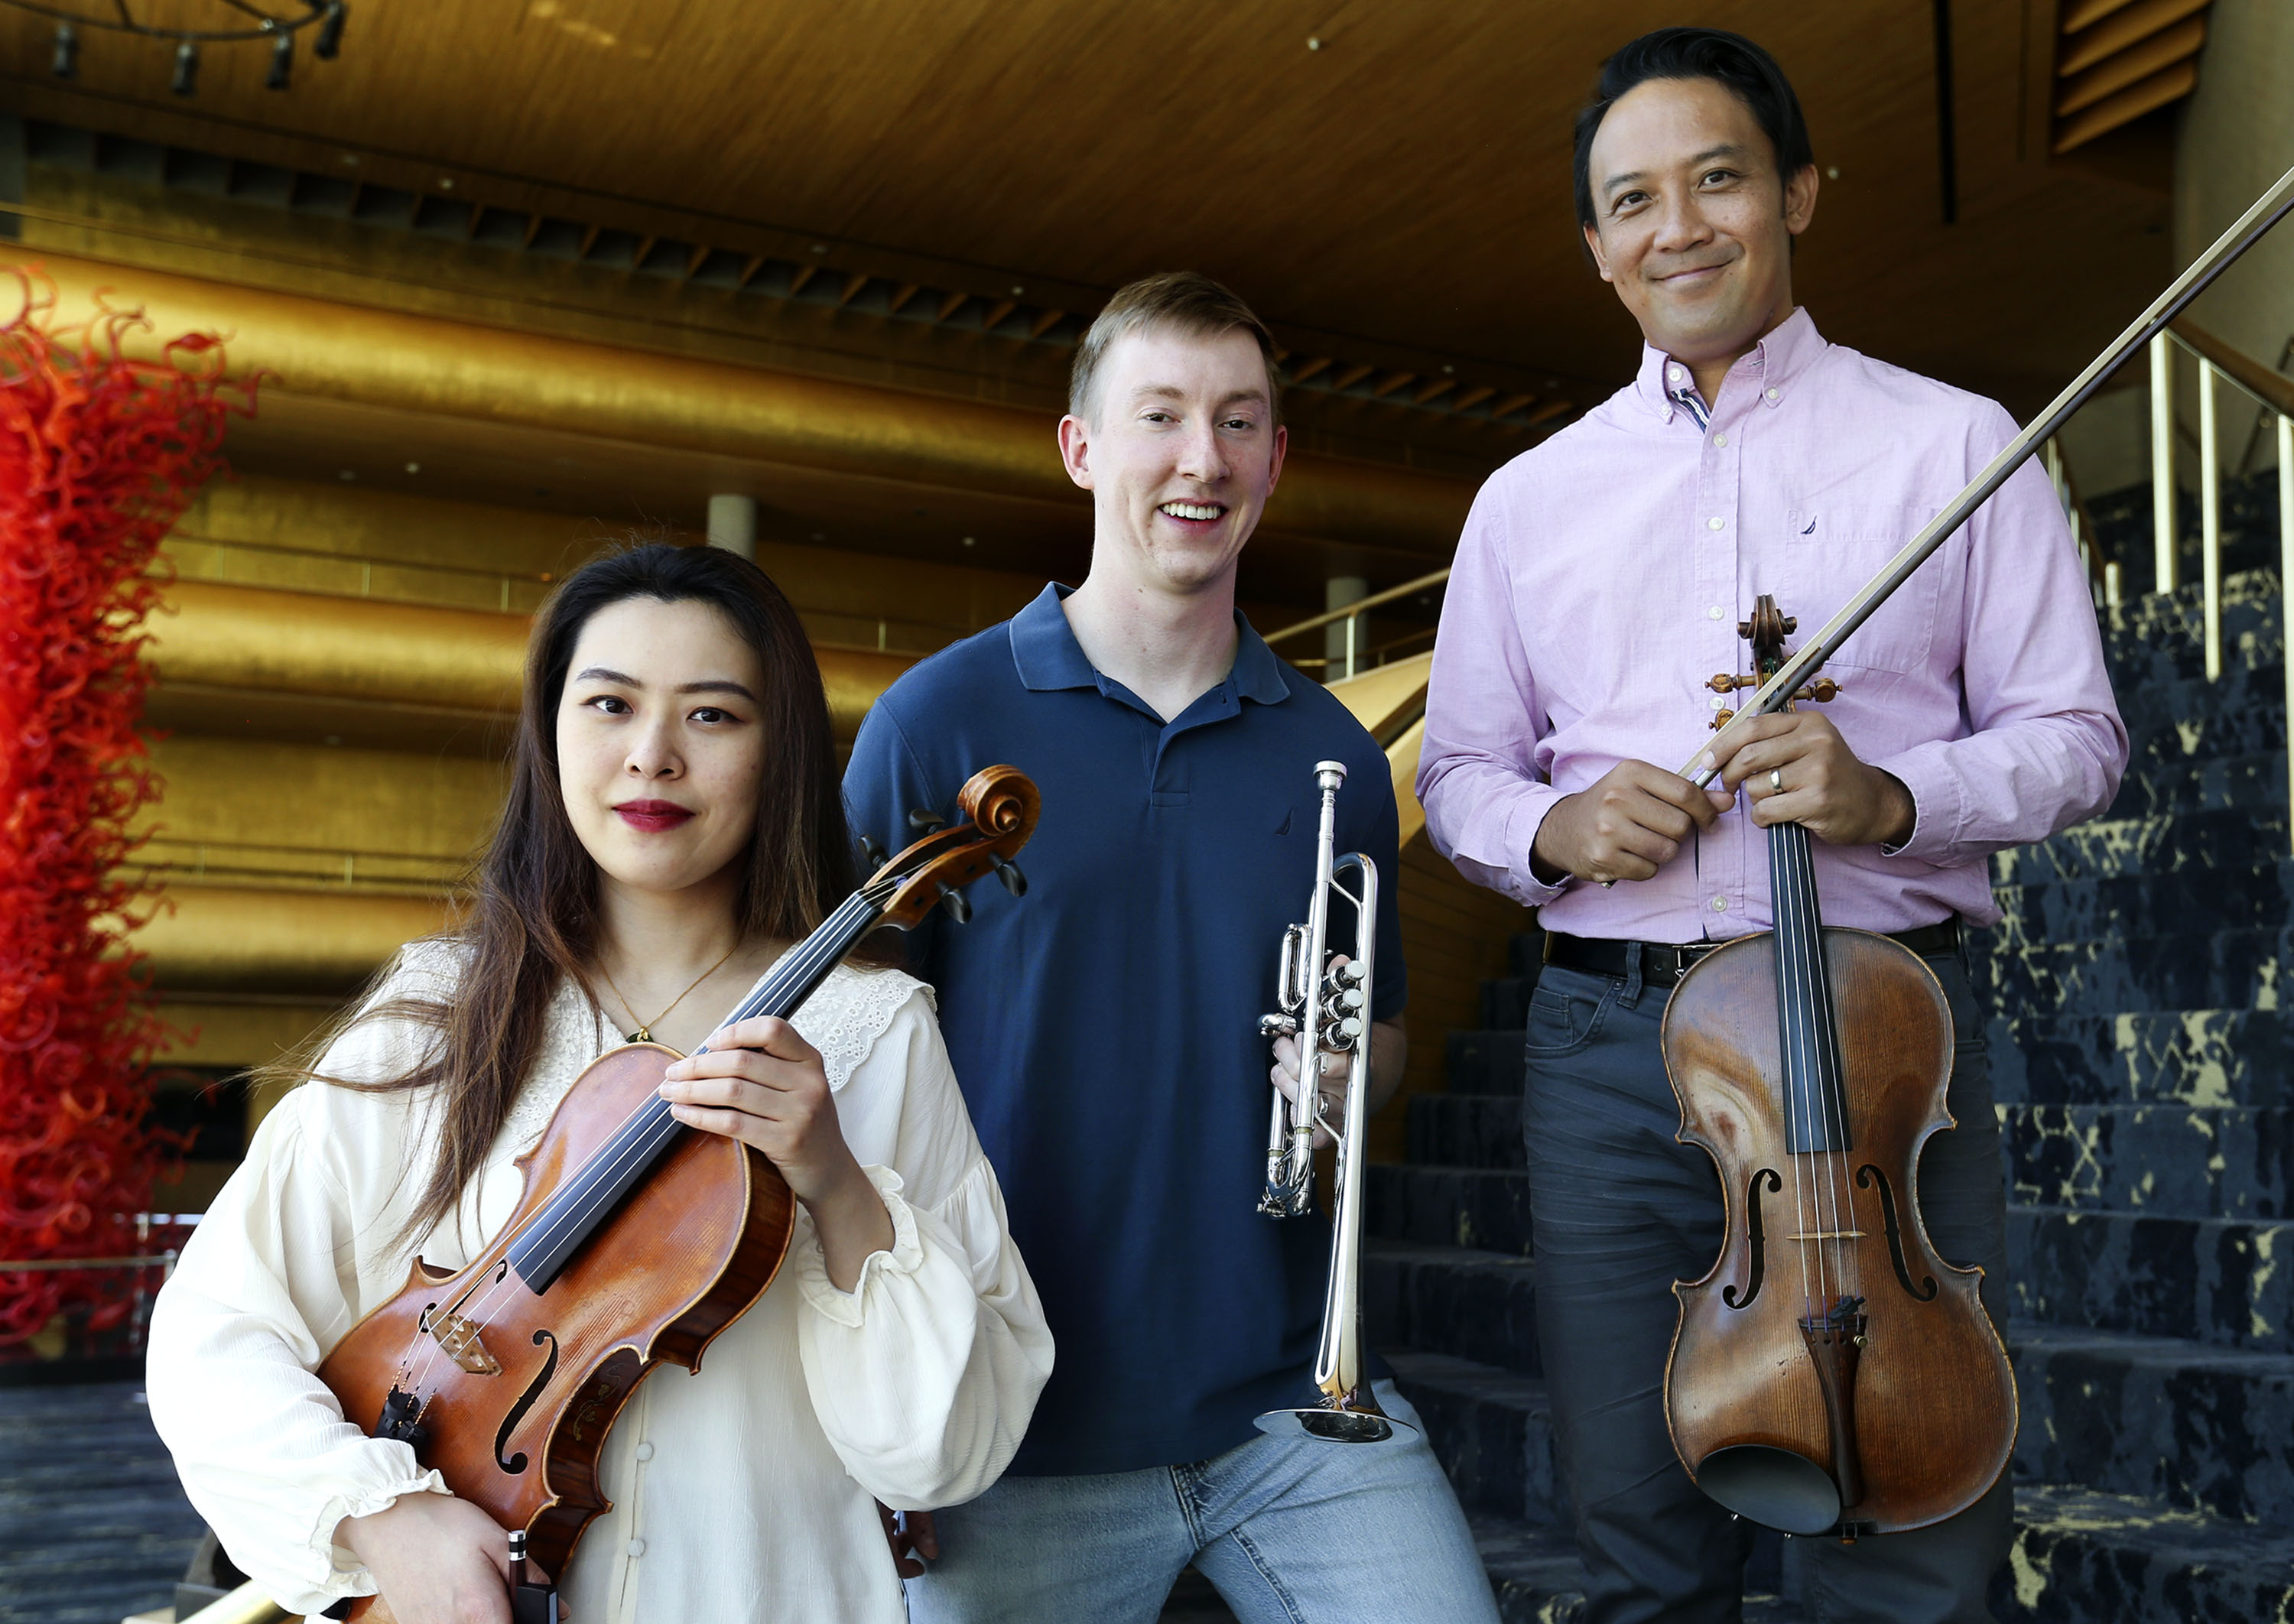 Yuan Qi, Paul Torrisi and JT Posadas, the newest members of the Utah Symphony, are photographed at Abravanel Hall.